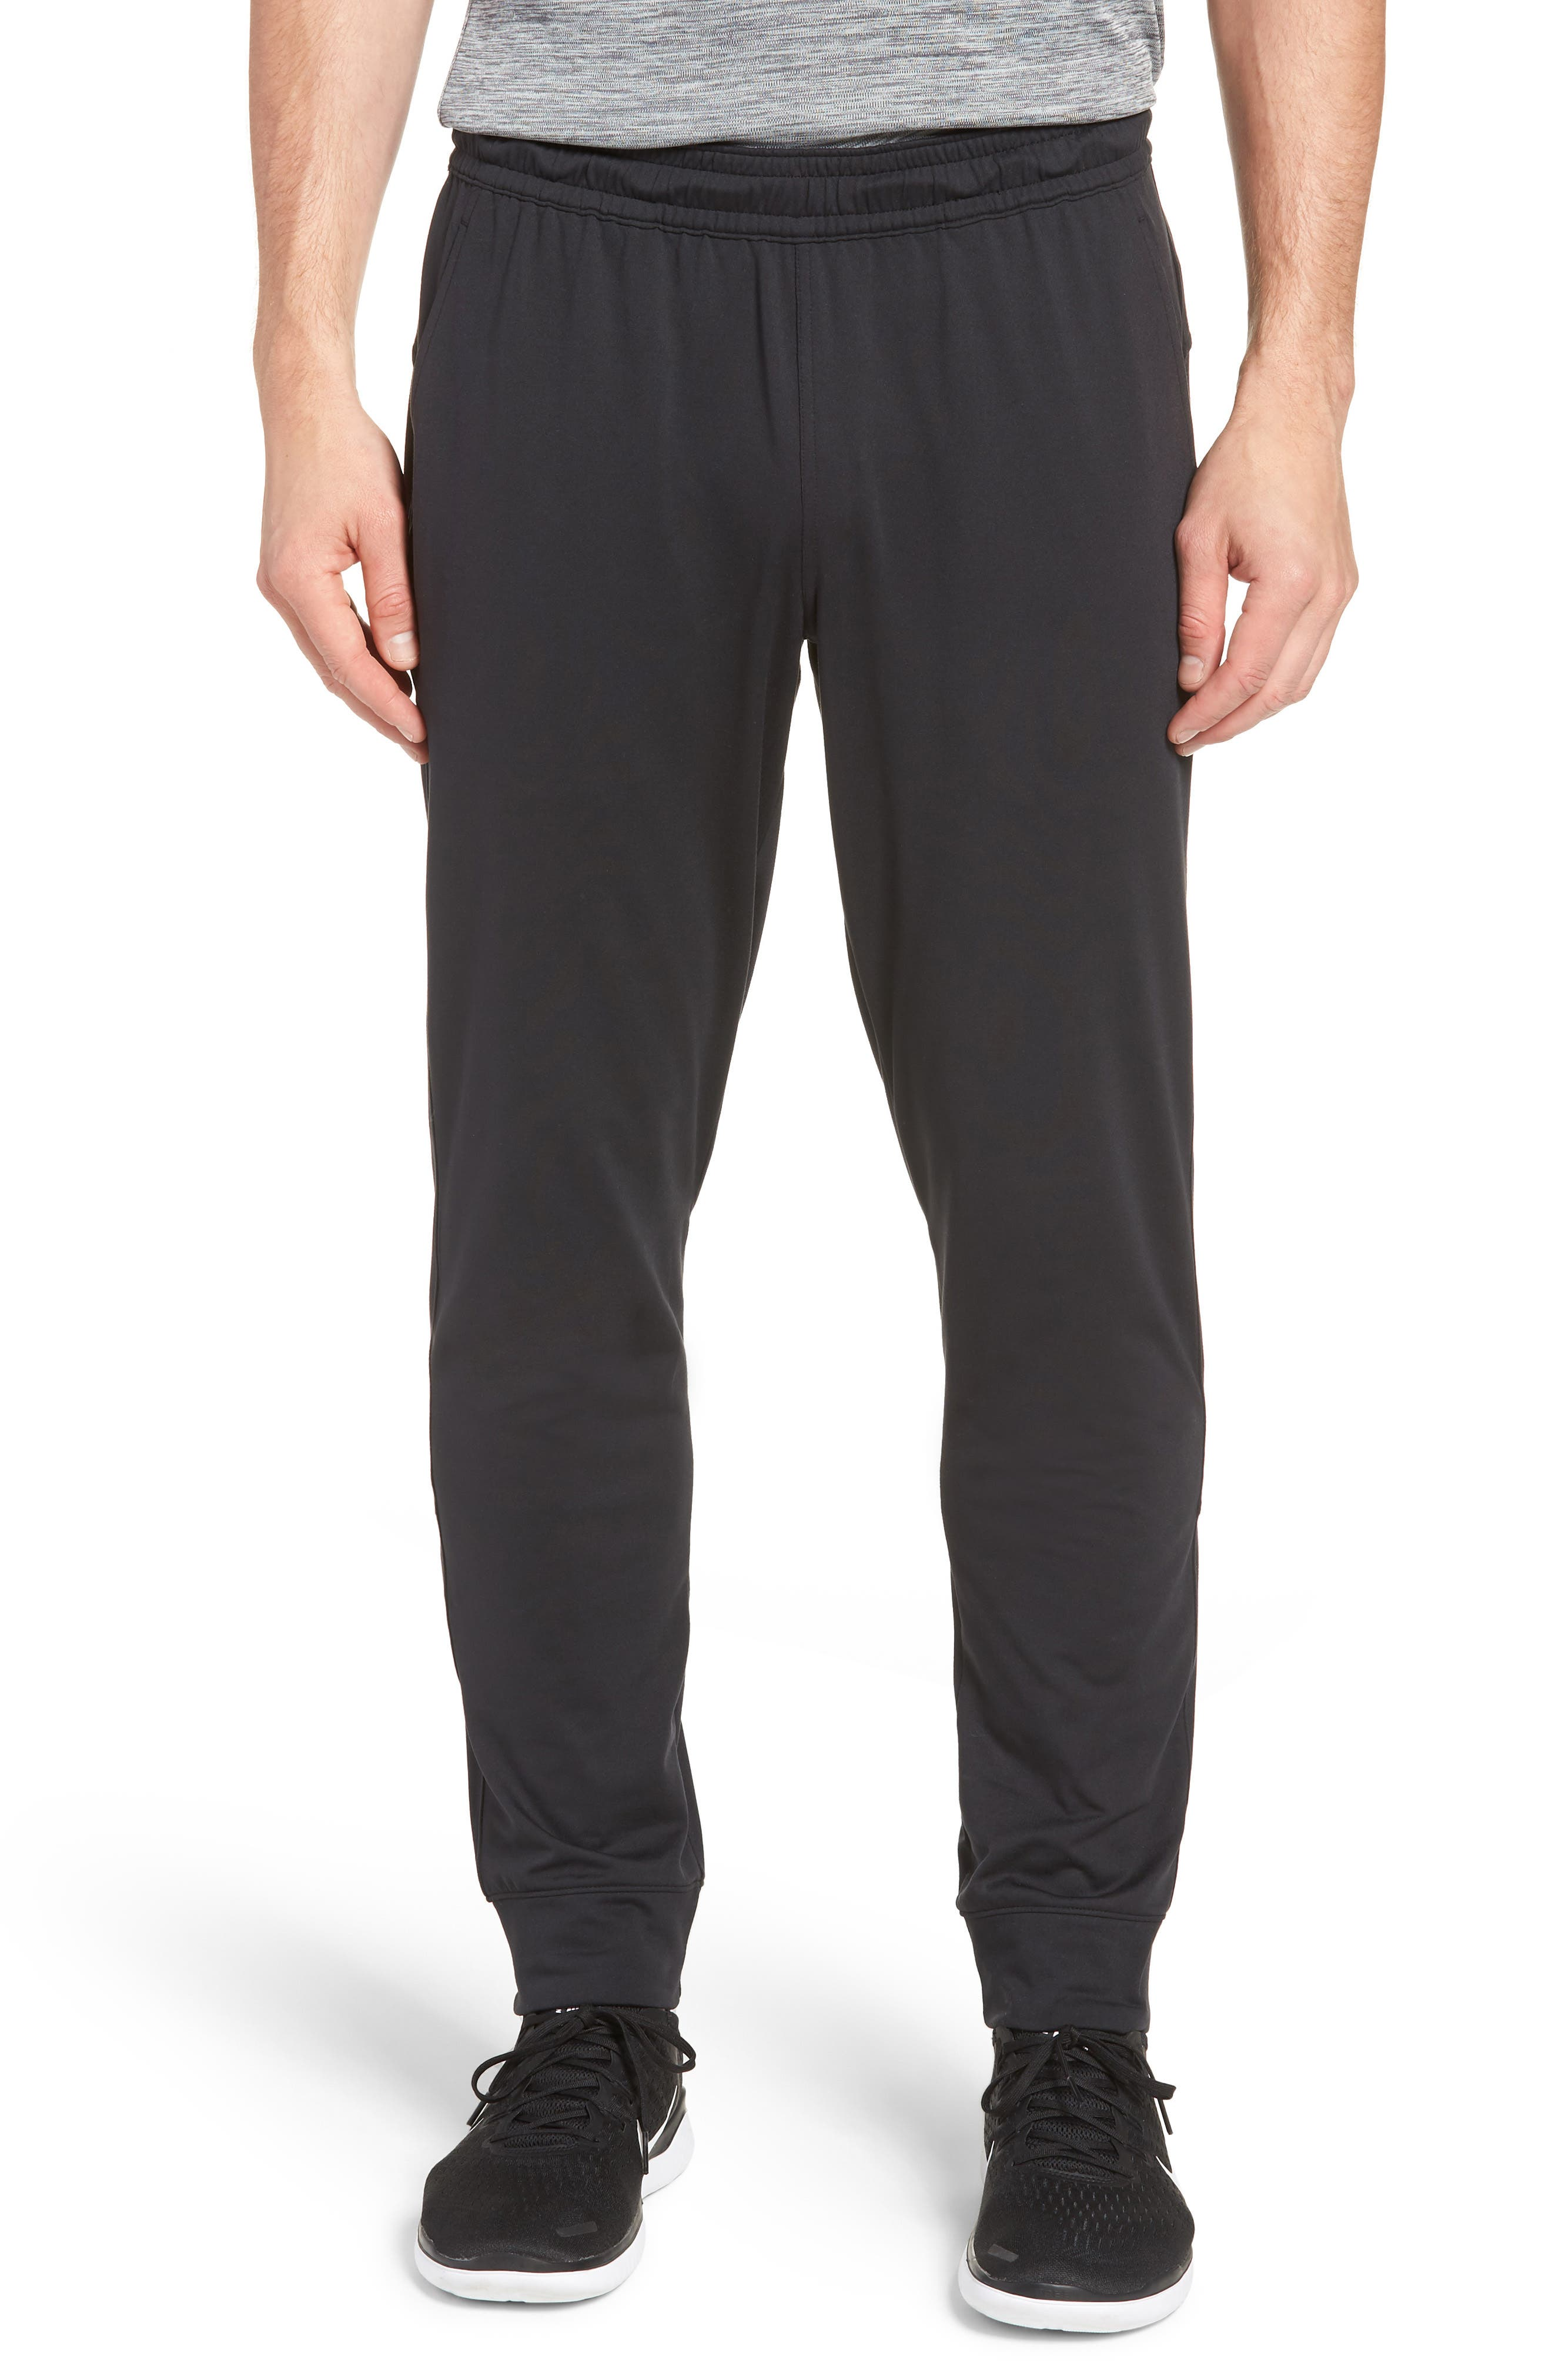 ZELLA Pyrite Technical Jogger Pants, Main, color, BLACK